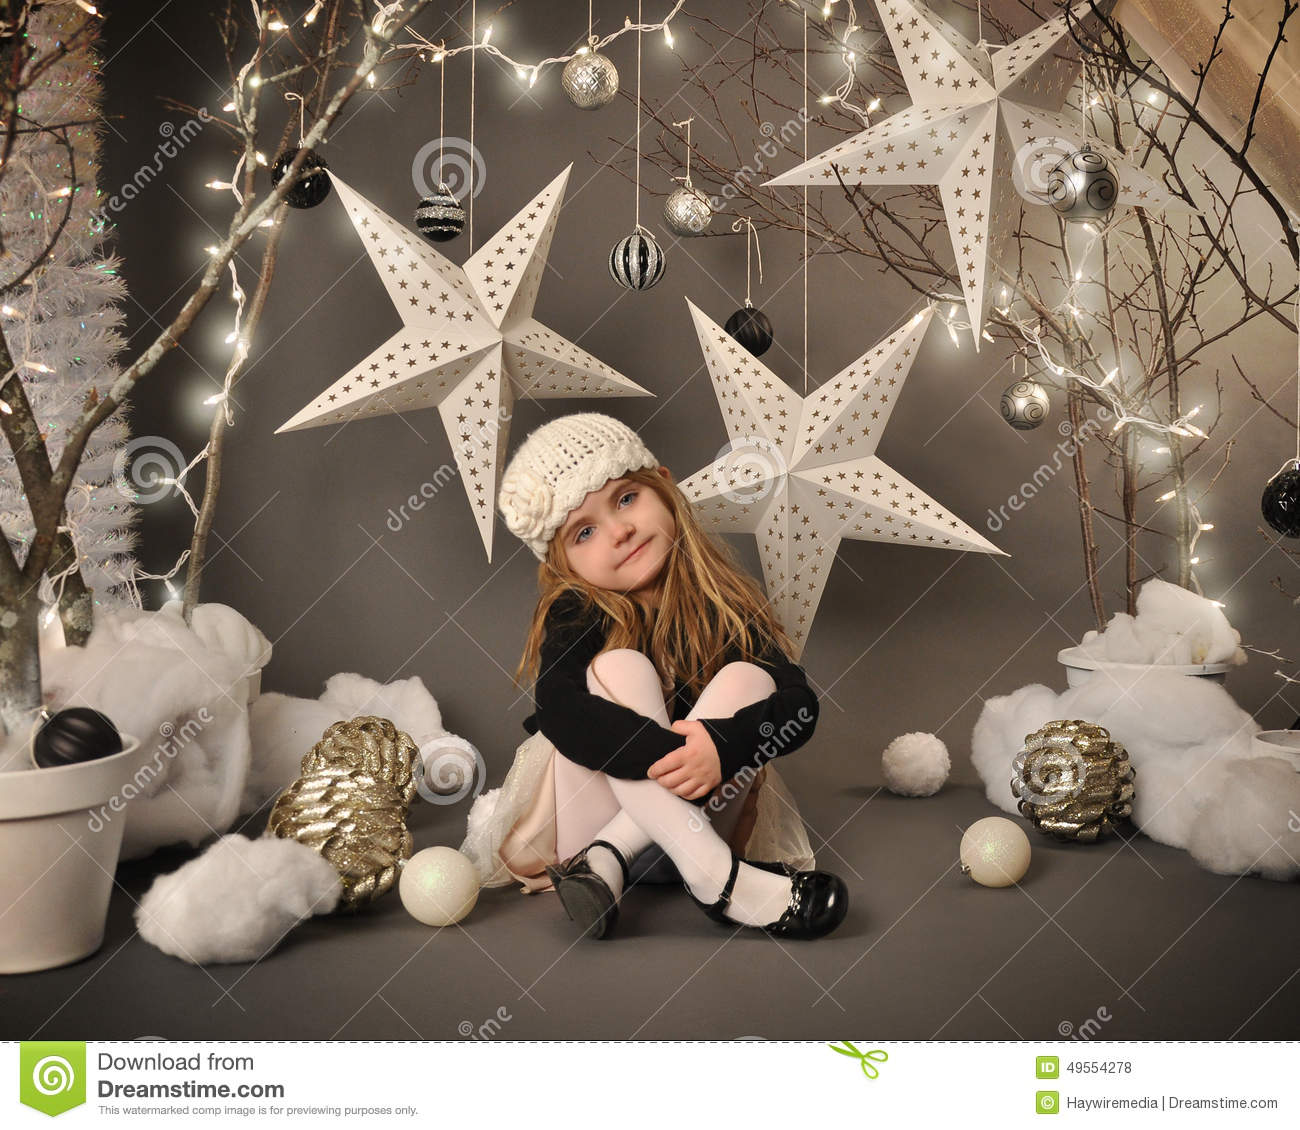 Little Girl Christmas Tree: Child Sitting In Winter Tree Star Scene Stock Photo